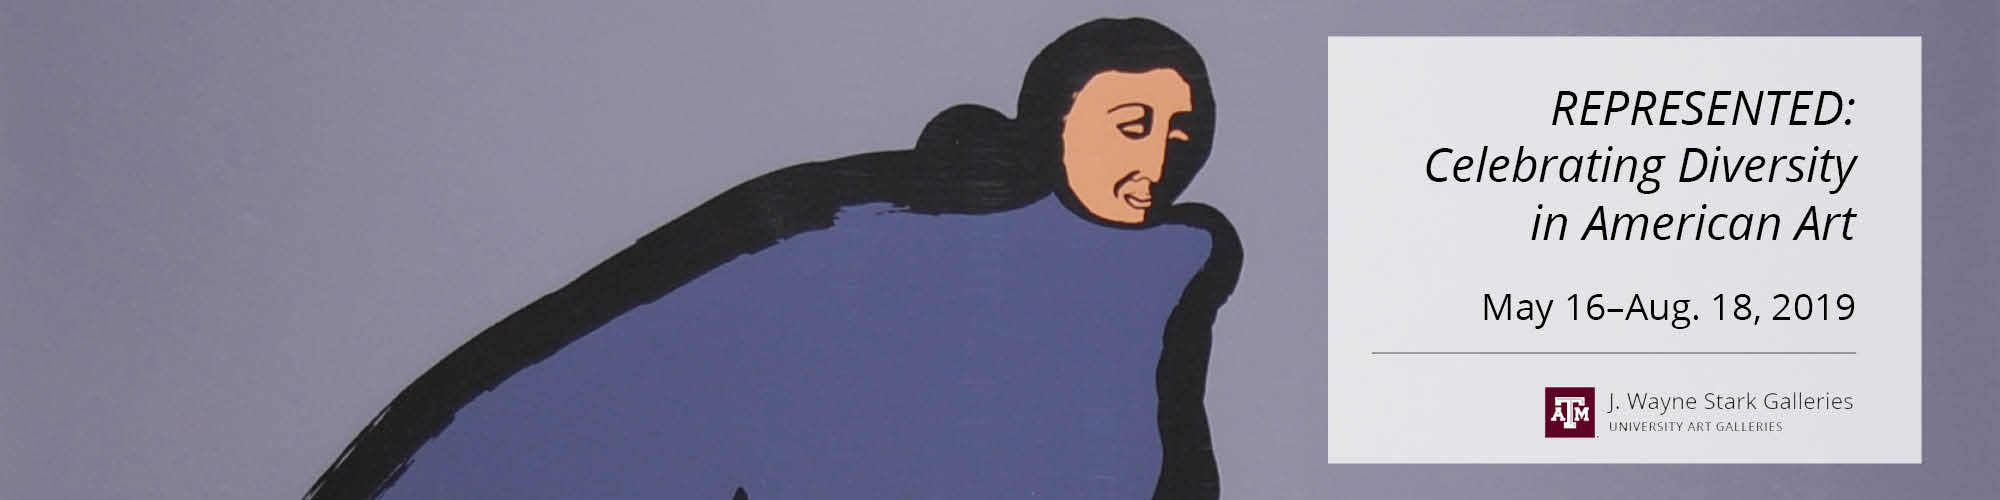 Kneeling woman with hands clasped sits in three quarter profile facing right. She is dressed in a deep blue full length dress sketched in heavy black outline on a purple background.